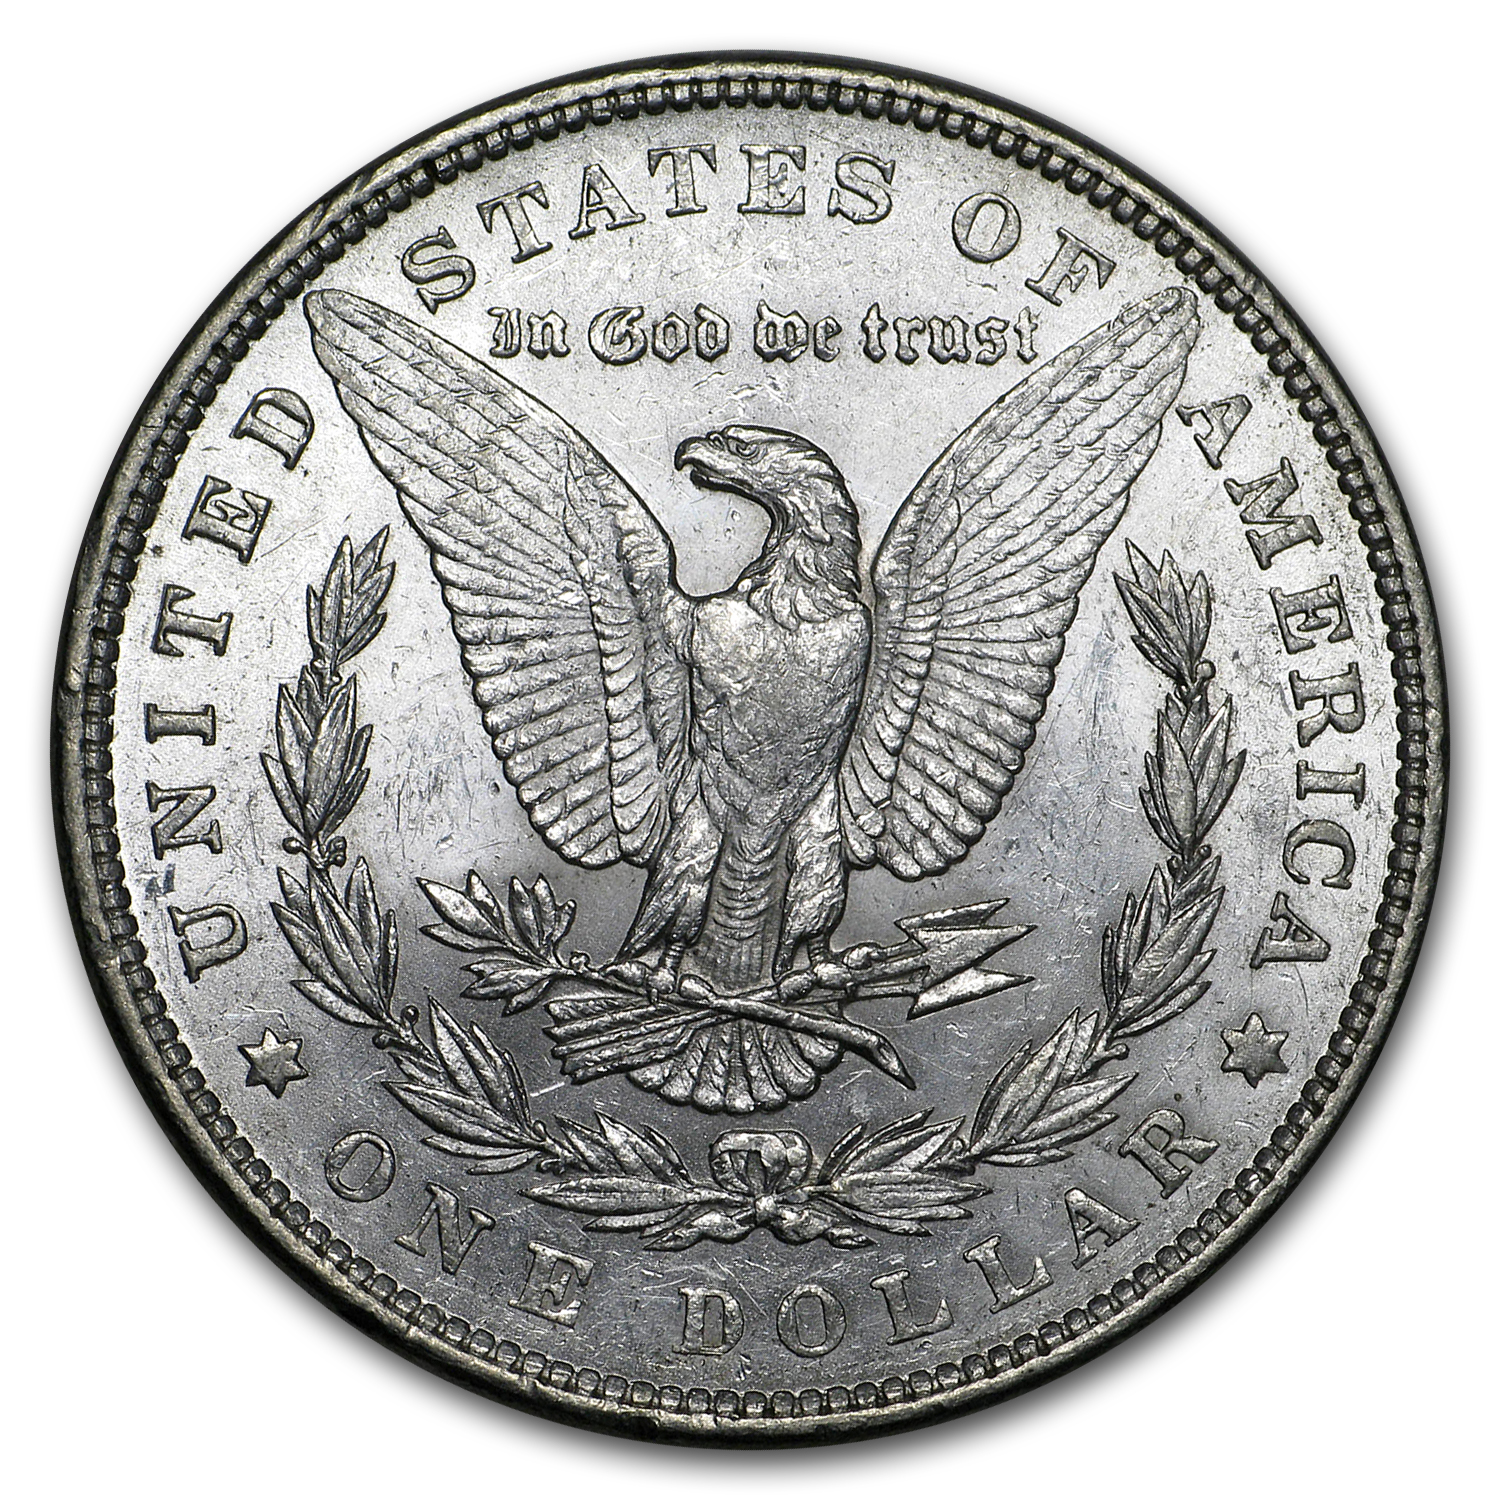 1878 Morgan Dollar 7 Tailfeathers Rev of 79 AU-58